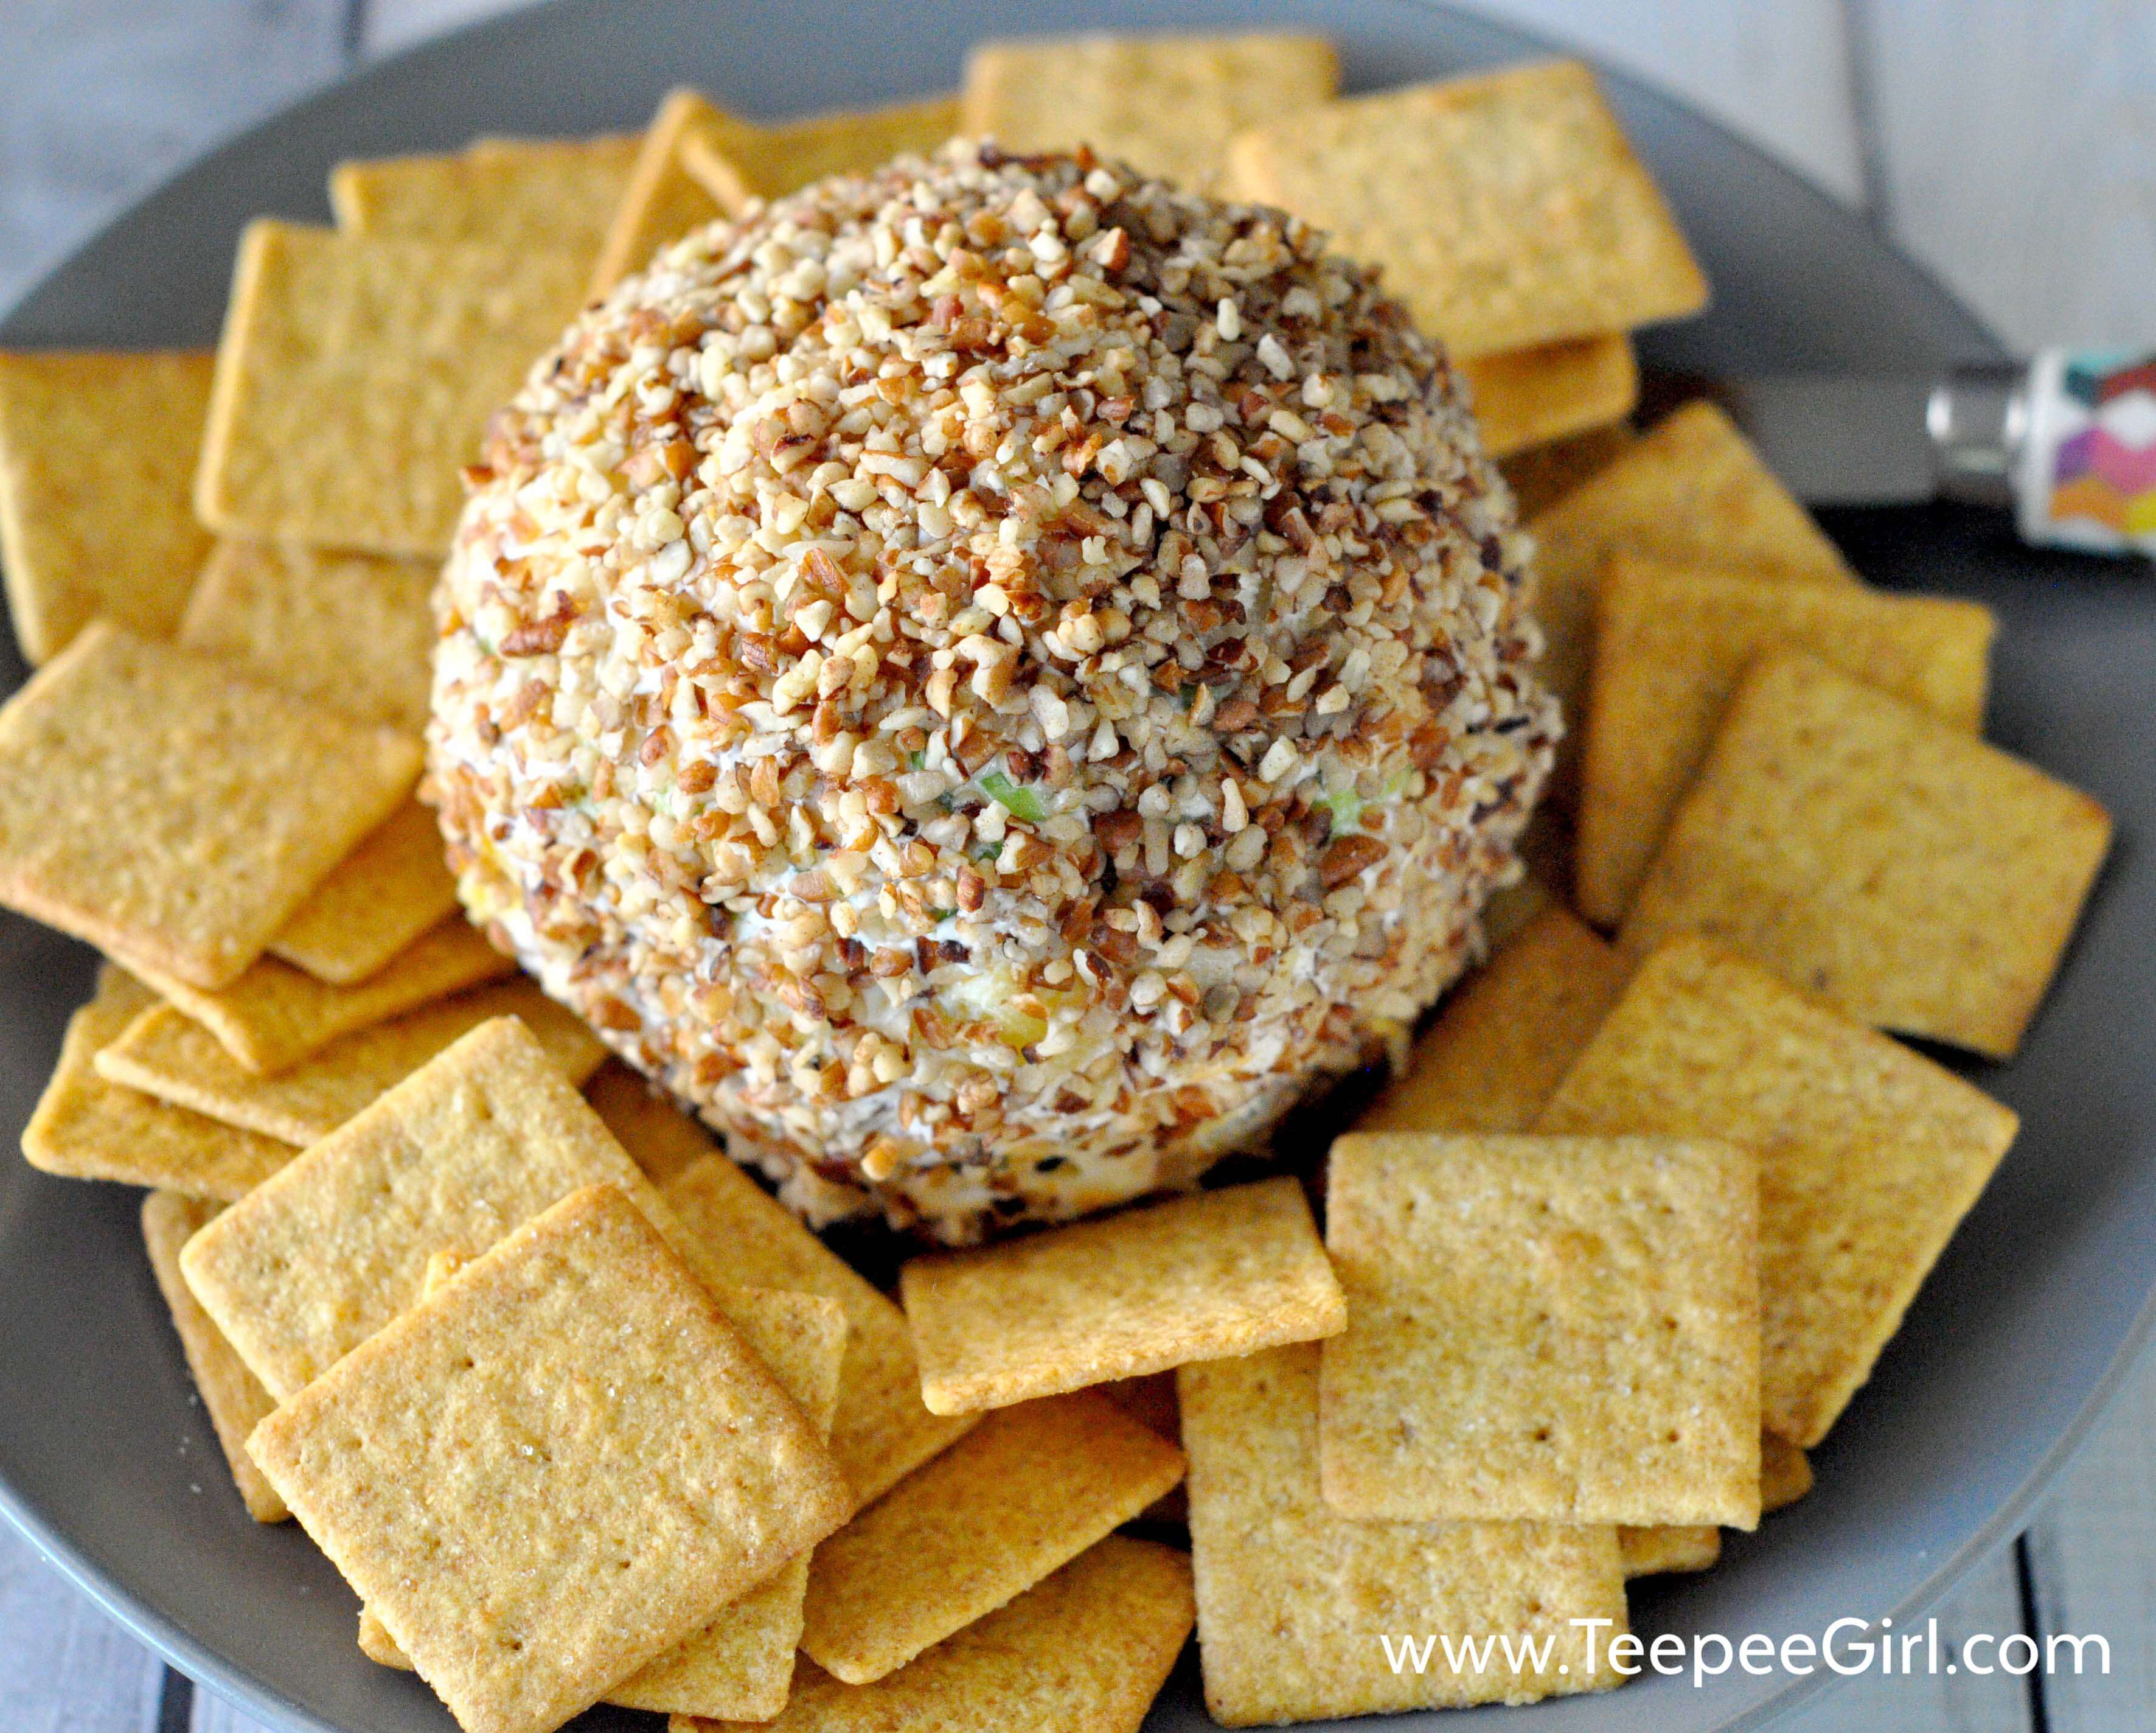 This easy and delicious cheese ball is perfect for all your family and holiday parties! It's easy, fun, and totally delicious!! Click here to get the recipe or go to www.TeepeeGirl.com.